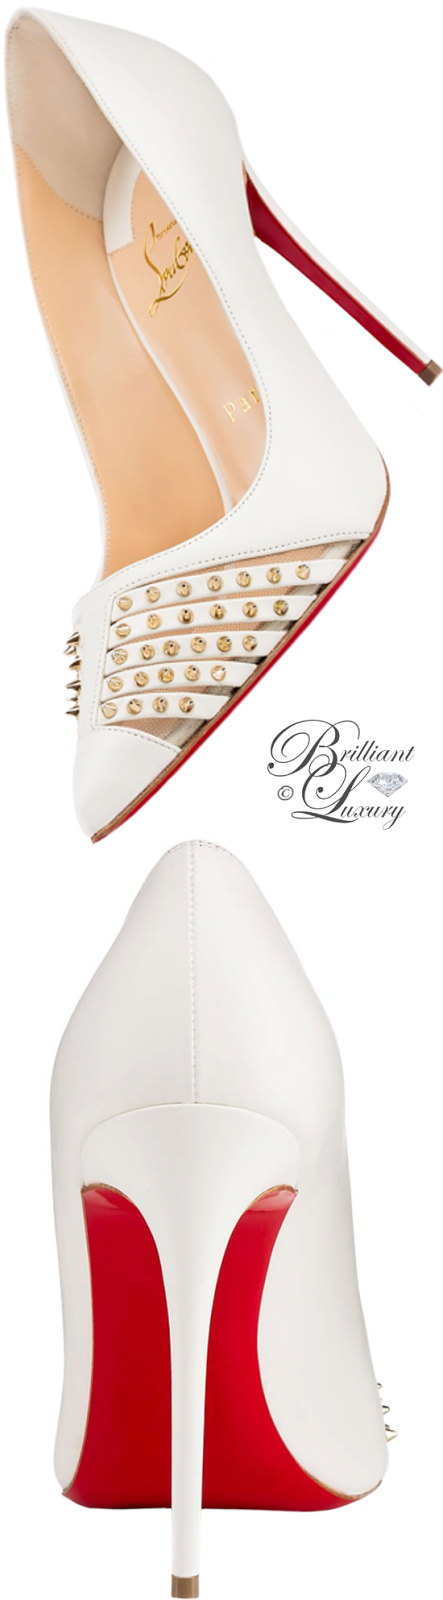 Brilliant Luxury ♦ Christian Louboutin Bareta Kid Rete pump